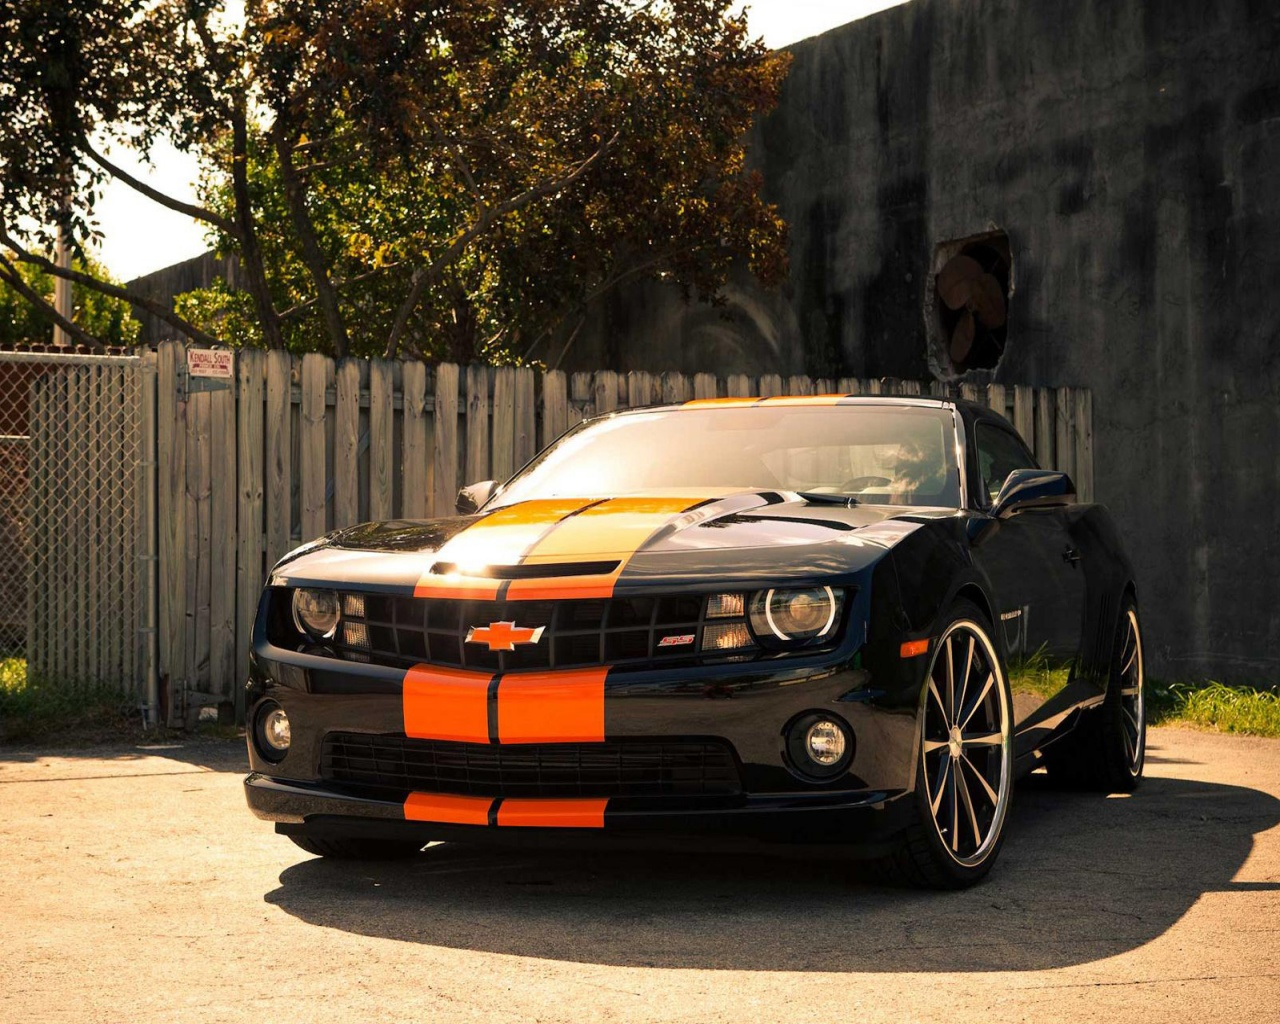 Chevrolet camaro ss car wallpapers in jpg format for free - Free camaro wallpaper download ...